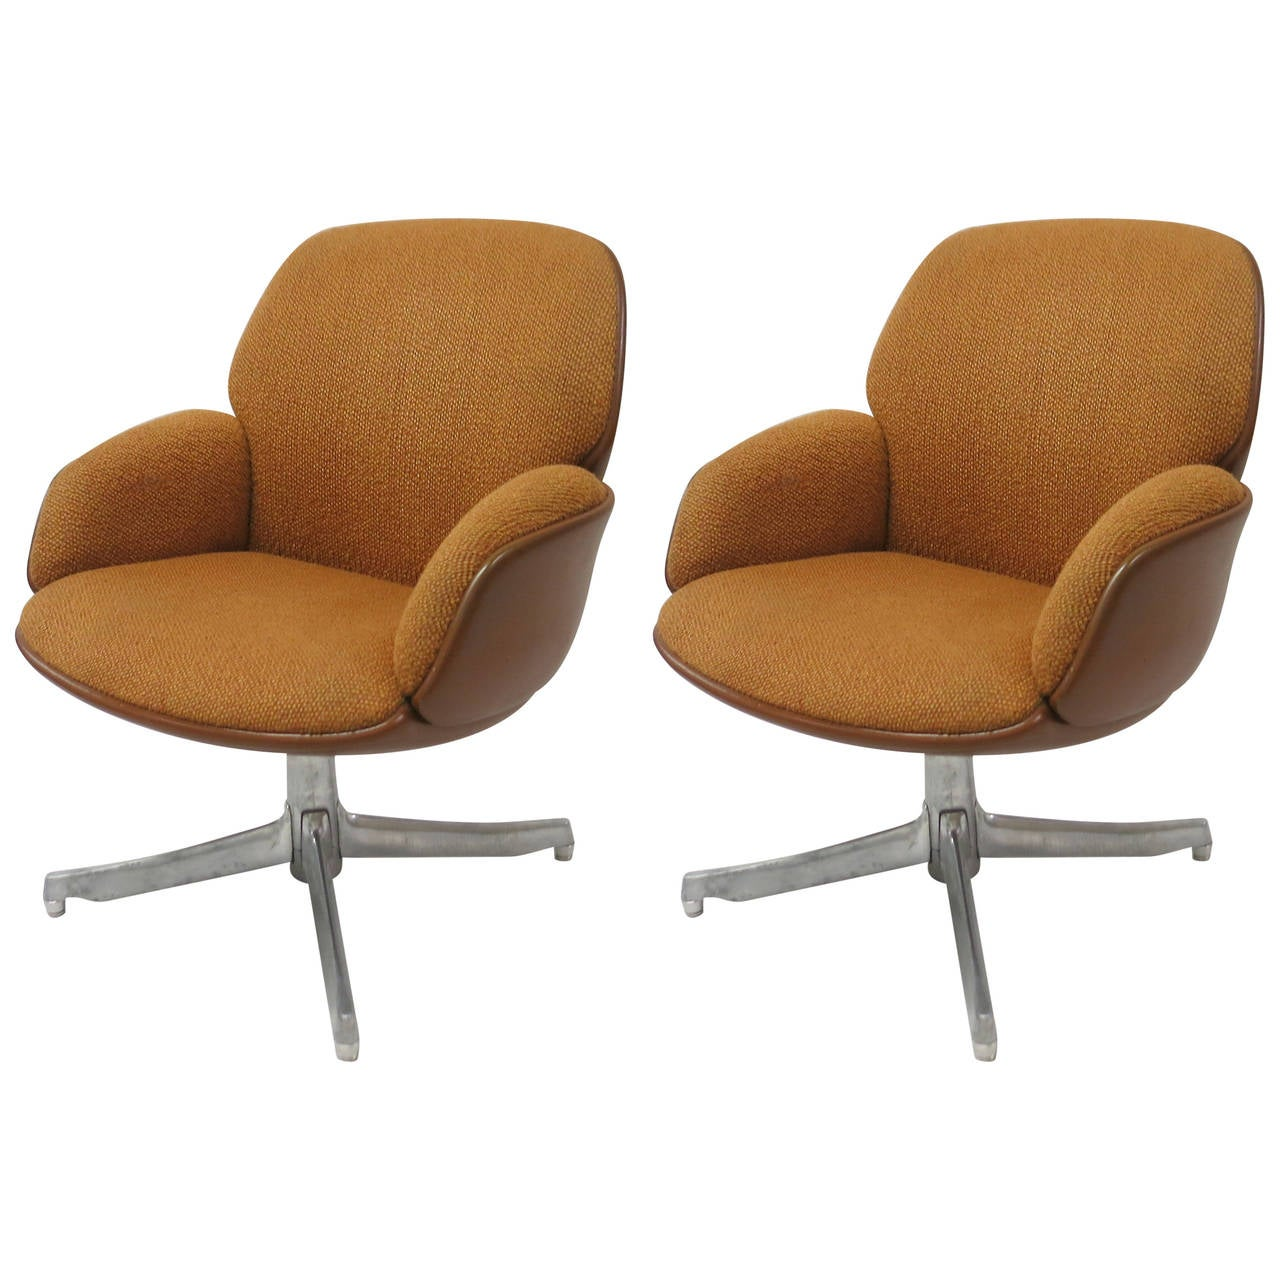 platner furniture. Pair Of Chairs By Warren Platner For Steelcase, USA Circa 1965 Furniture O